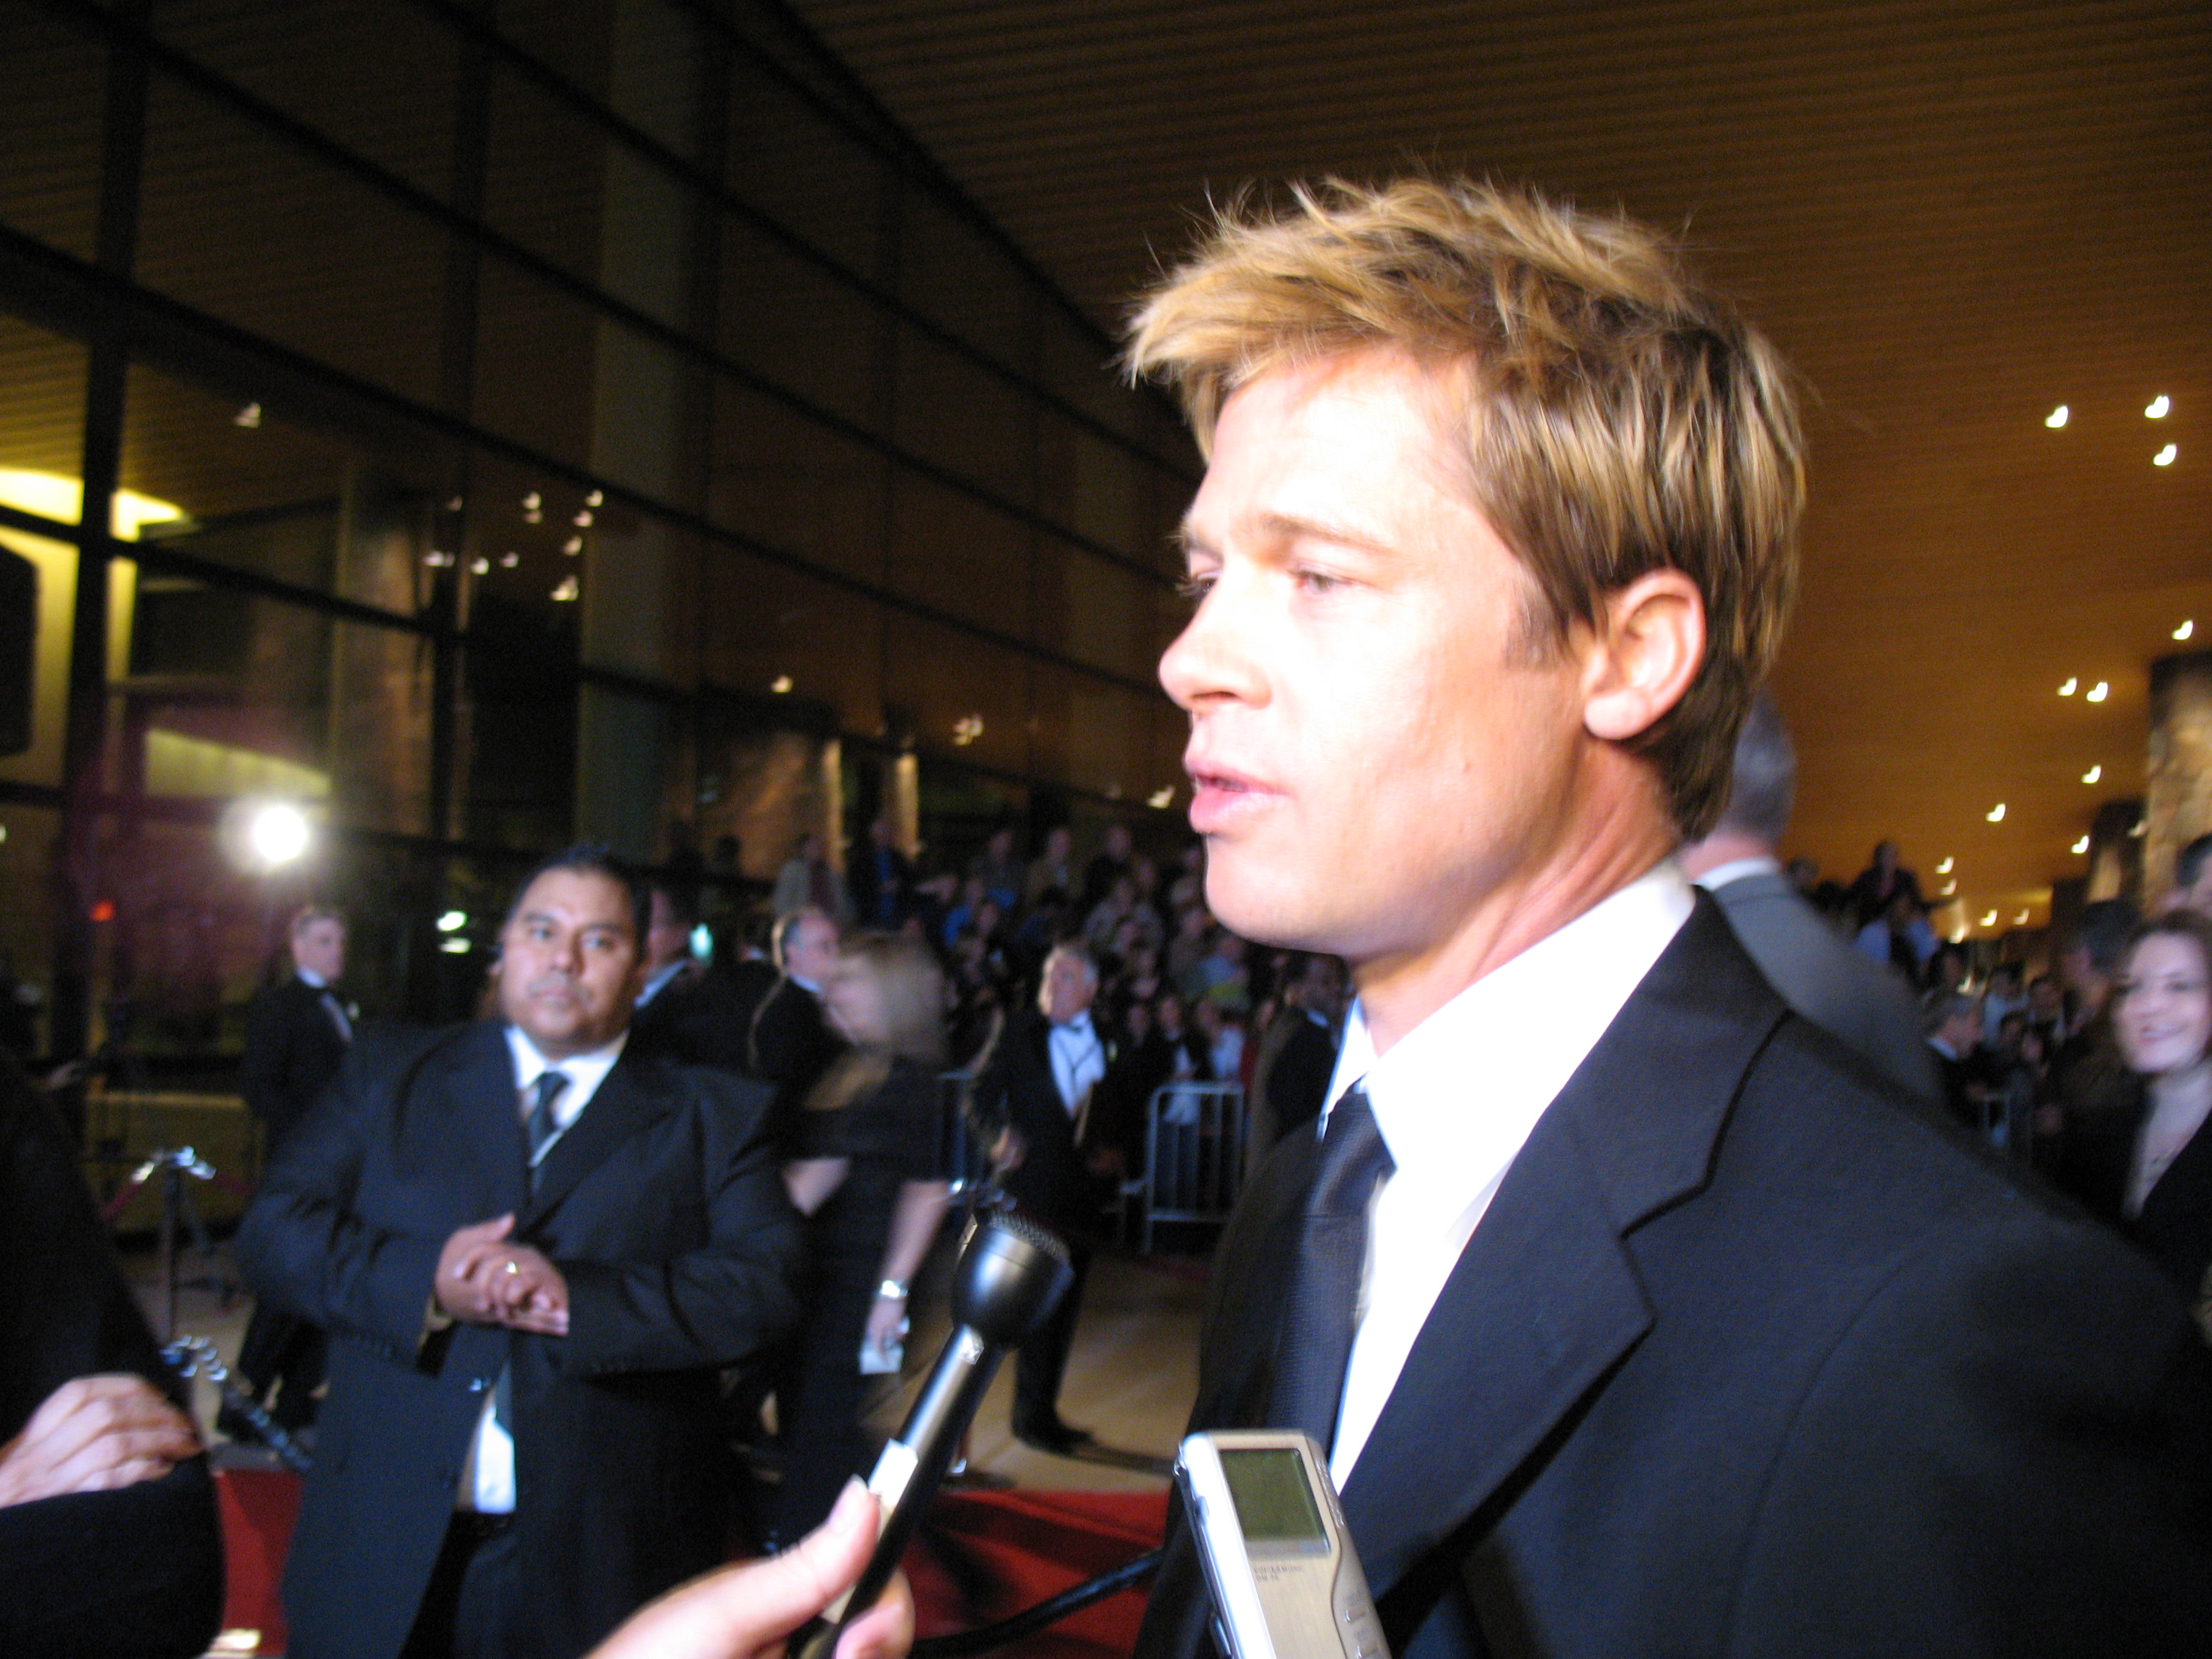 A Caucasian male with dyed blonde hair is being interviewed. He is wearing a black suit and tie, with a white shirt, and is standing on a red carpet. People standing behind barricades are visible in the background, while microphones are visible in the foreground.